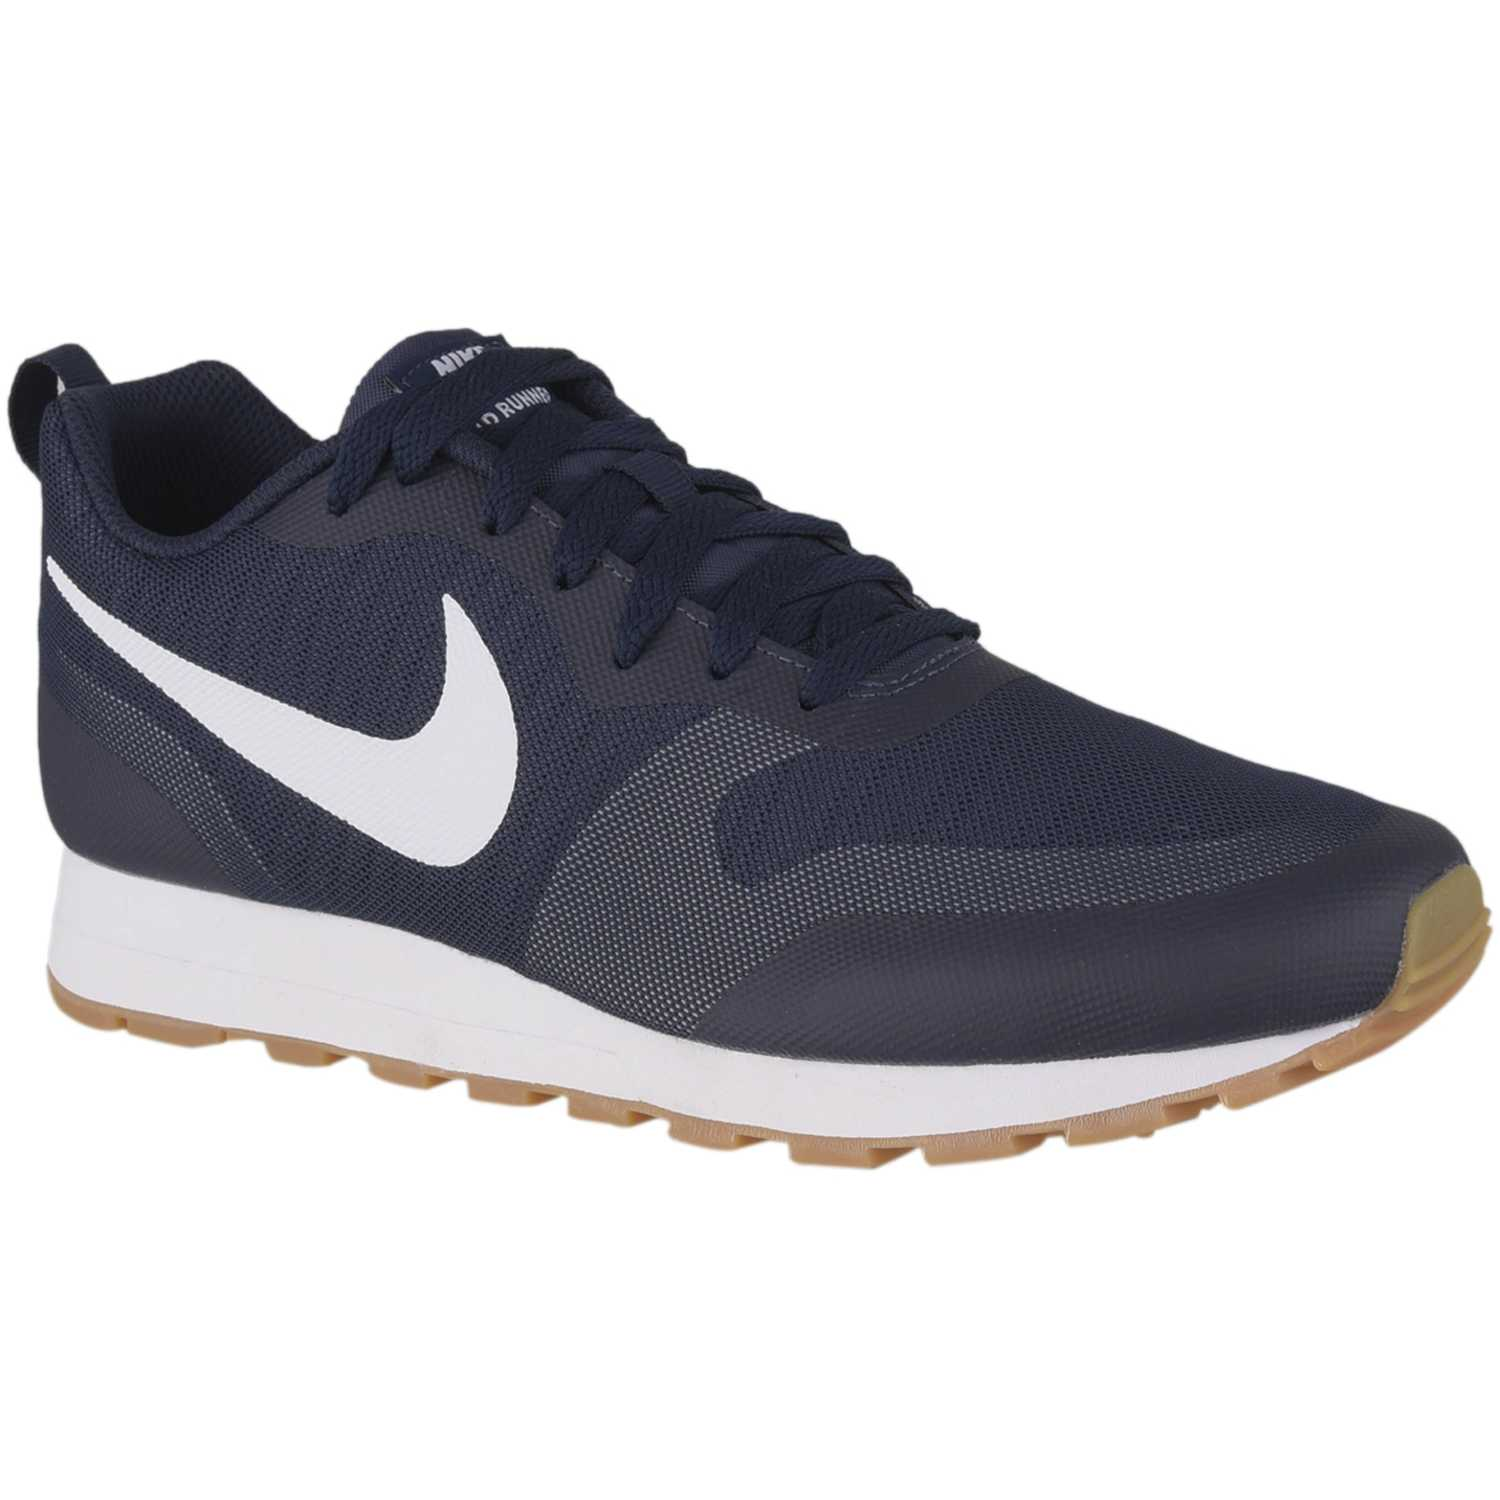 2019 Mujeres Zapatos Nike Md Runner 2 Negras Y Blancas